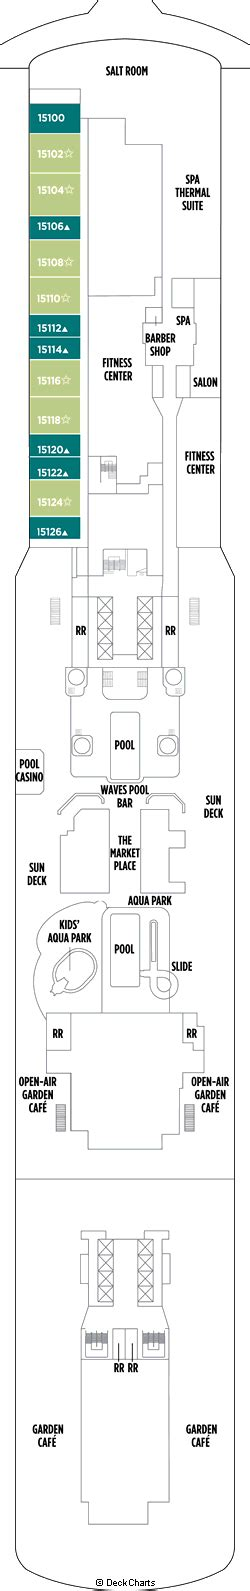 Breakaway Deck Plan 8 by Breakaway Deck 15 Cruise Critic